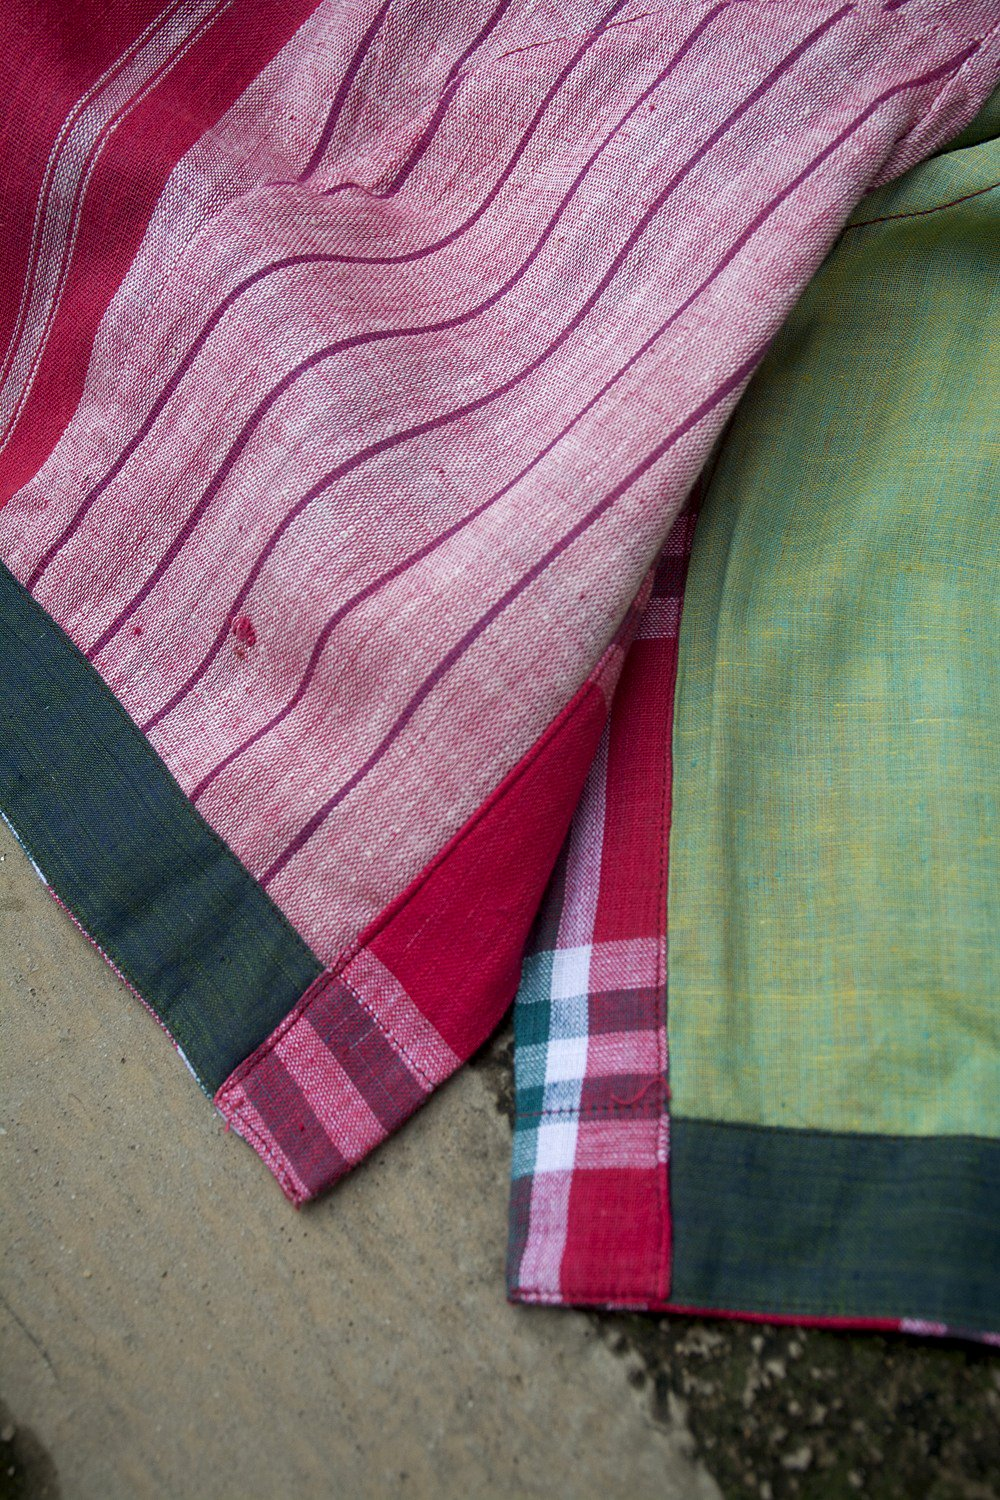 Red Madras Checks Saree Blouse. - metaphorracha